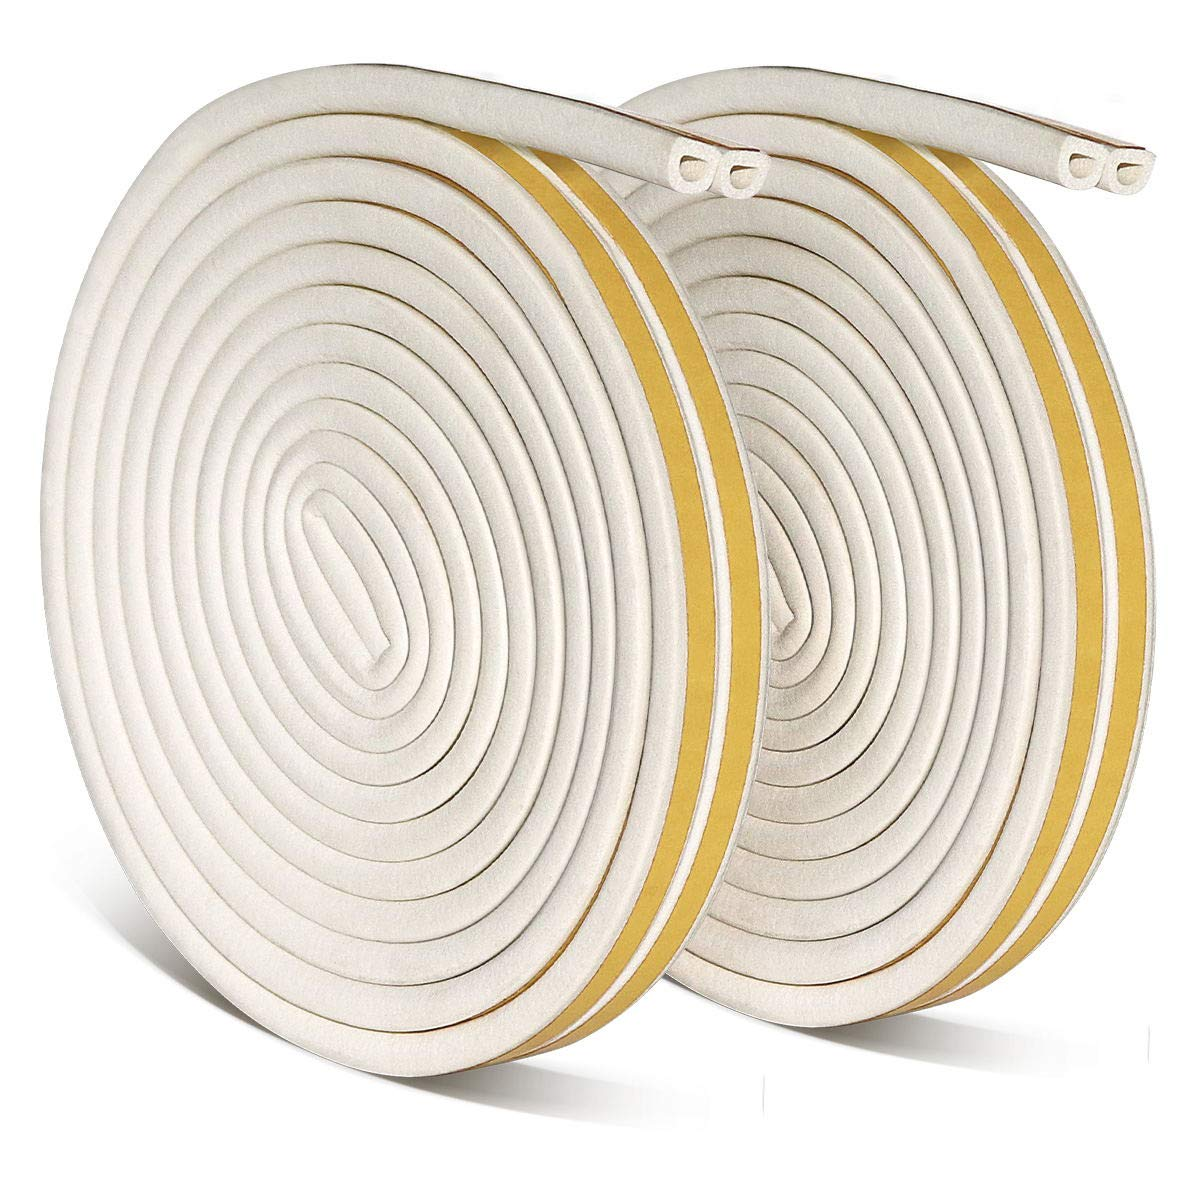 Vaxuia Rubber Seal Weather Strip Foam Tape Door Window Anti-Collision Self-Adhesive Rubber Water-Proofing Muffle the Noise Draught Excluder Door Insulation Strip Durable 12Meters(D Type, White) White)